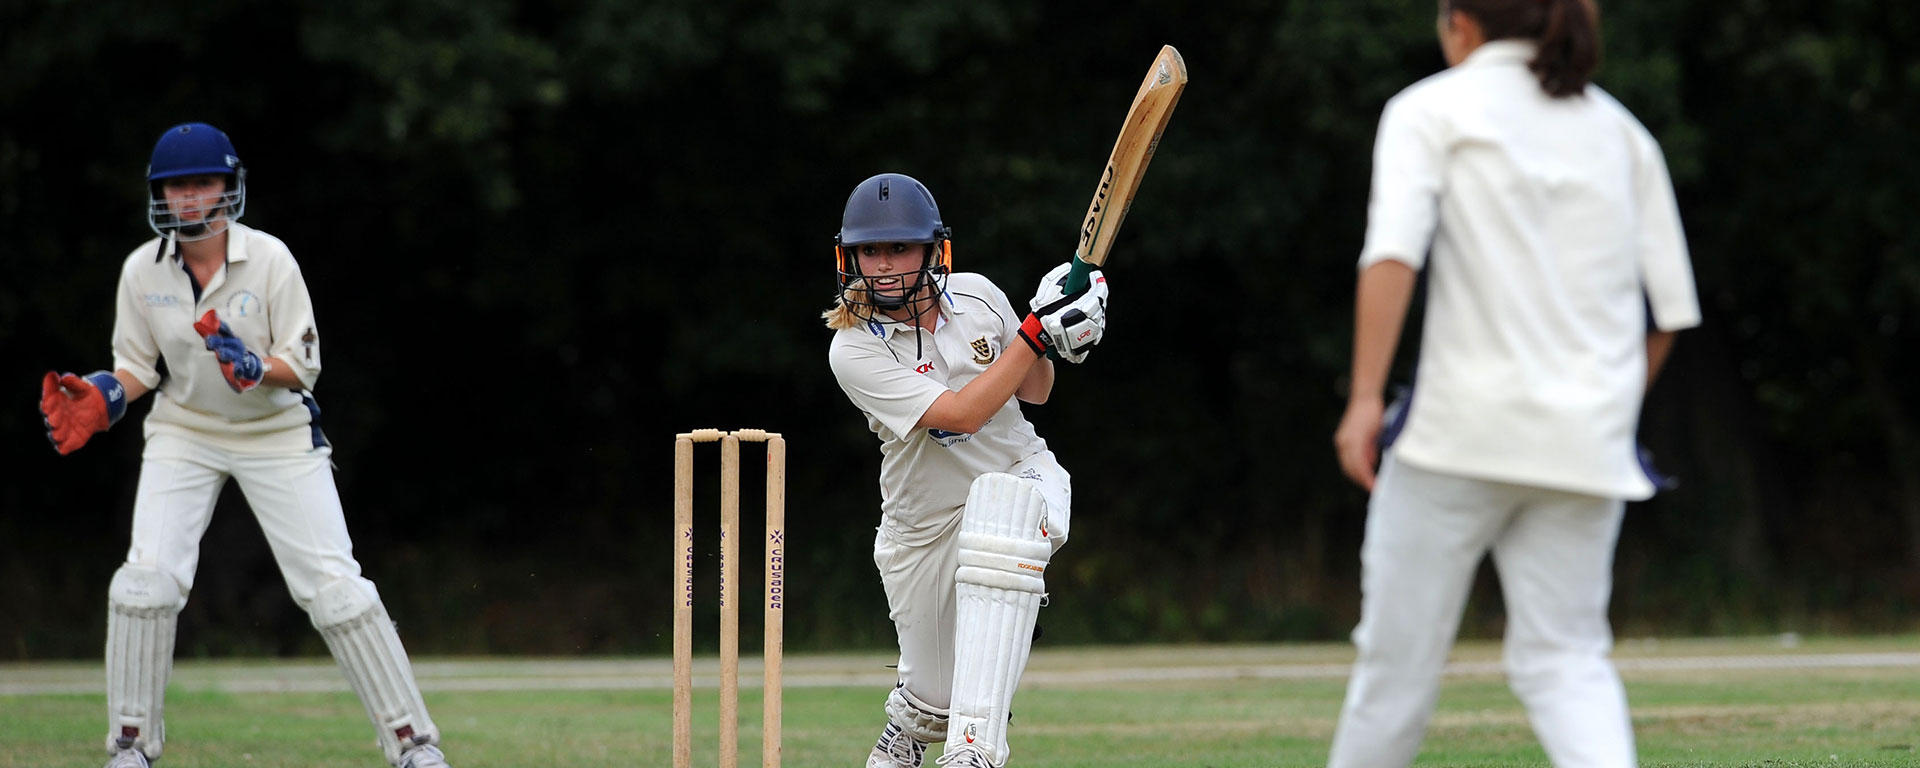 League revamp hits mark in Cheshire